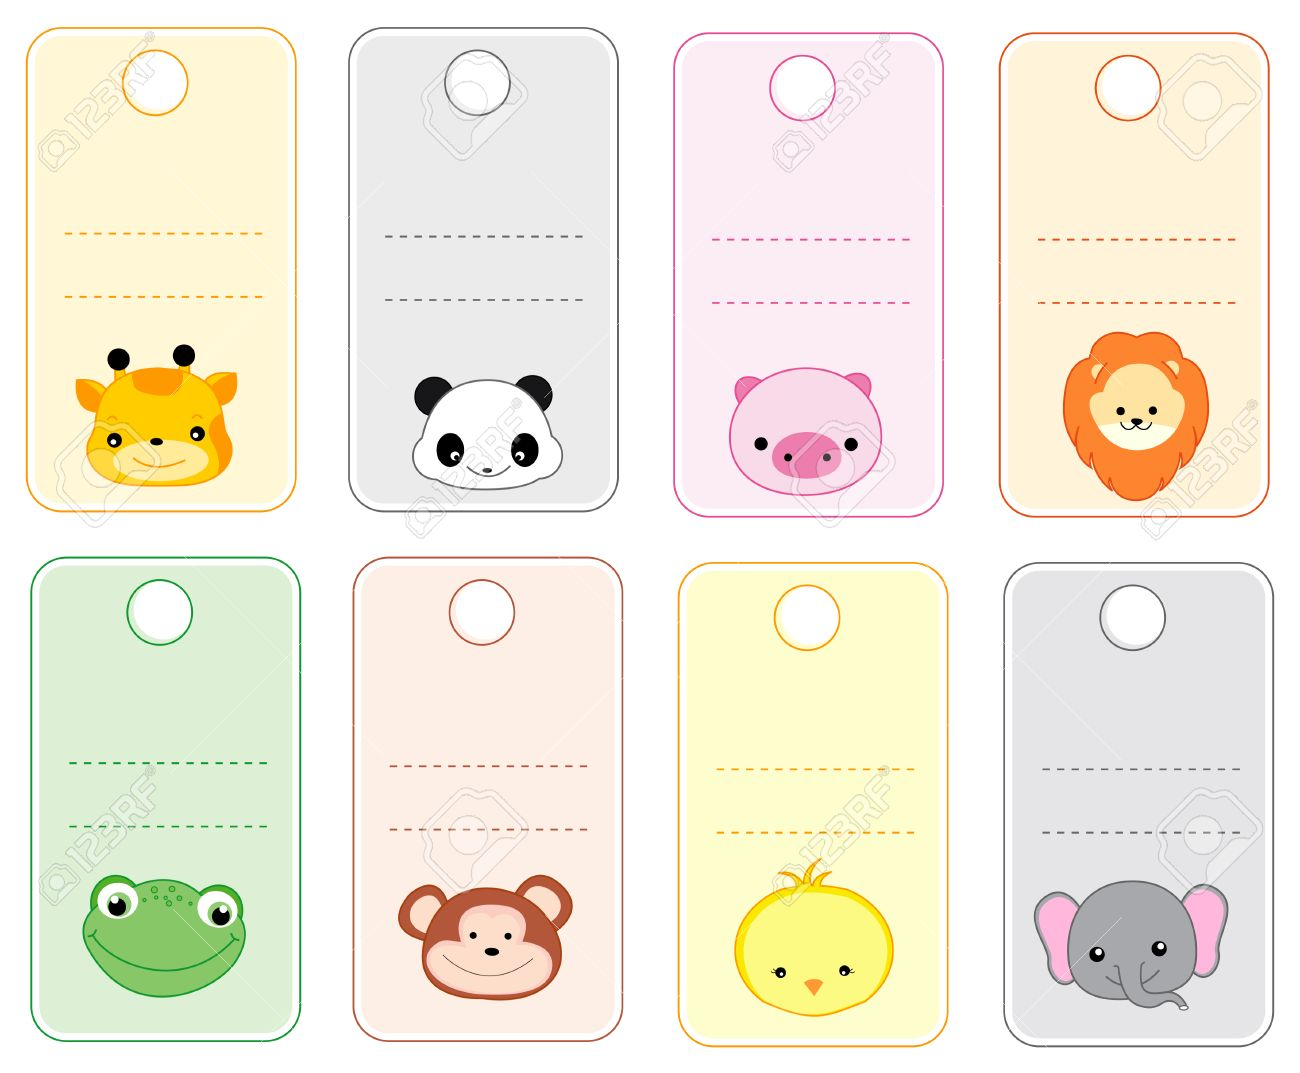 graphic about Name Tags Printable known as Colourful printable reward tags / popularity tags with adorable animal faces..